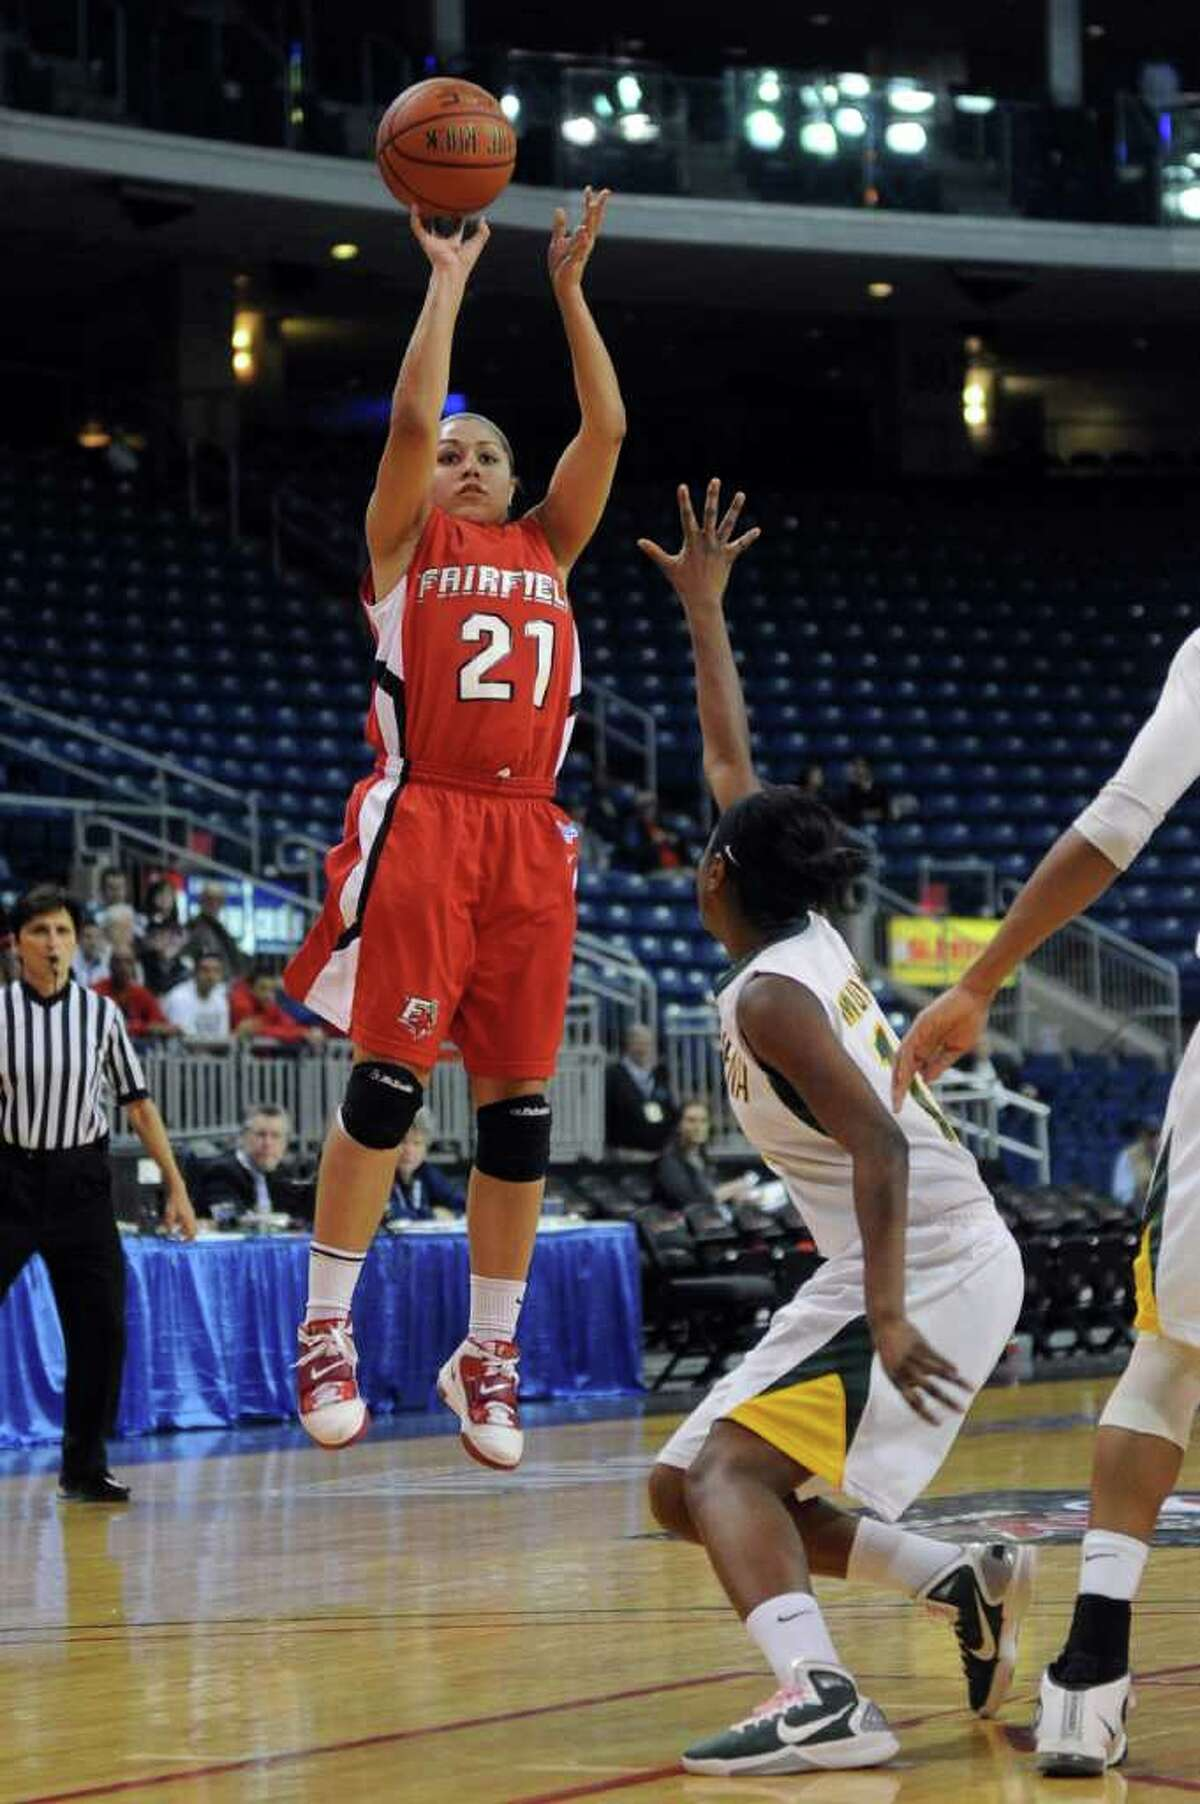 Fairfield's Desiree Pina takes a shot during Friday's MAAC Tournament quarterfinal game at Webster Bank Arena at Harbor Yard on March 4, 2011.